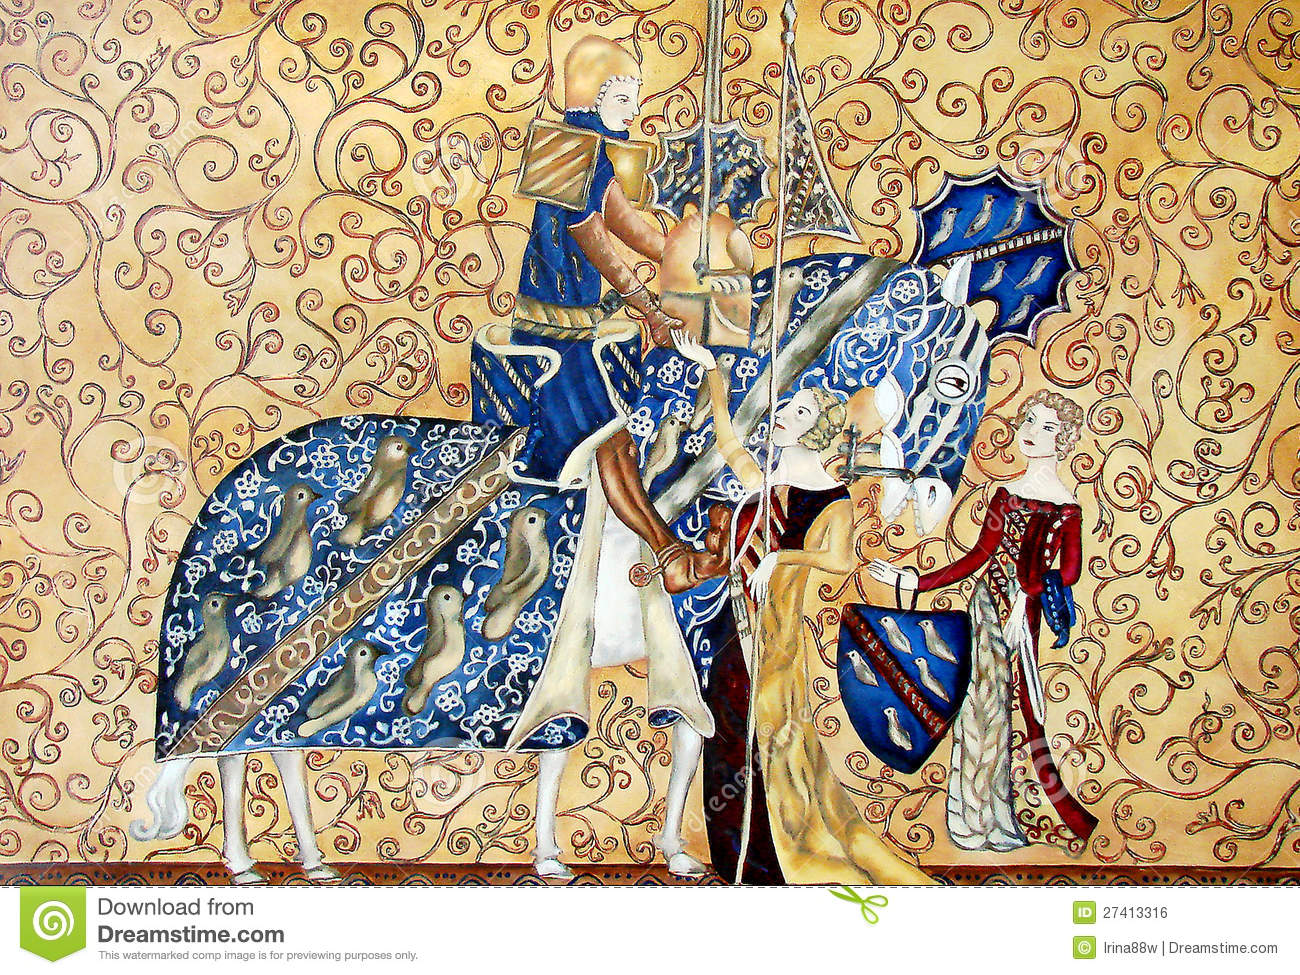 peinture de medival de roi et de reine avec le cheval bleu illustration stock illustration du. Black Bedroom Furniture Sets. Home Design Ideas